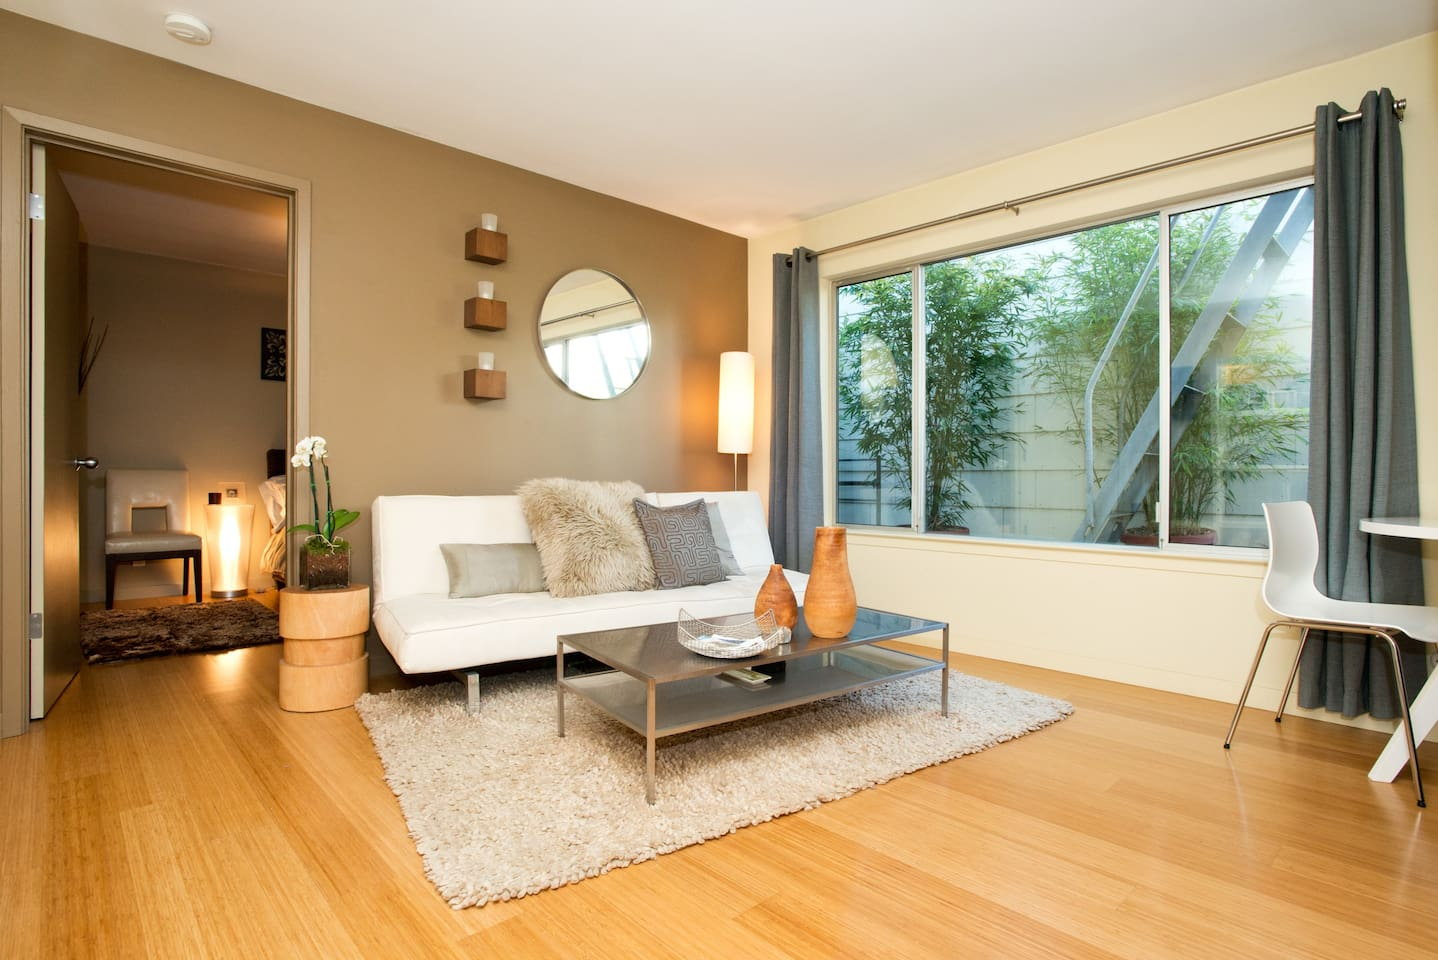 Modern furnishings in a clean, efficient space to call your own.